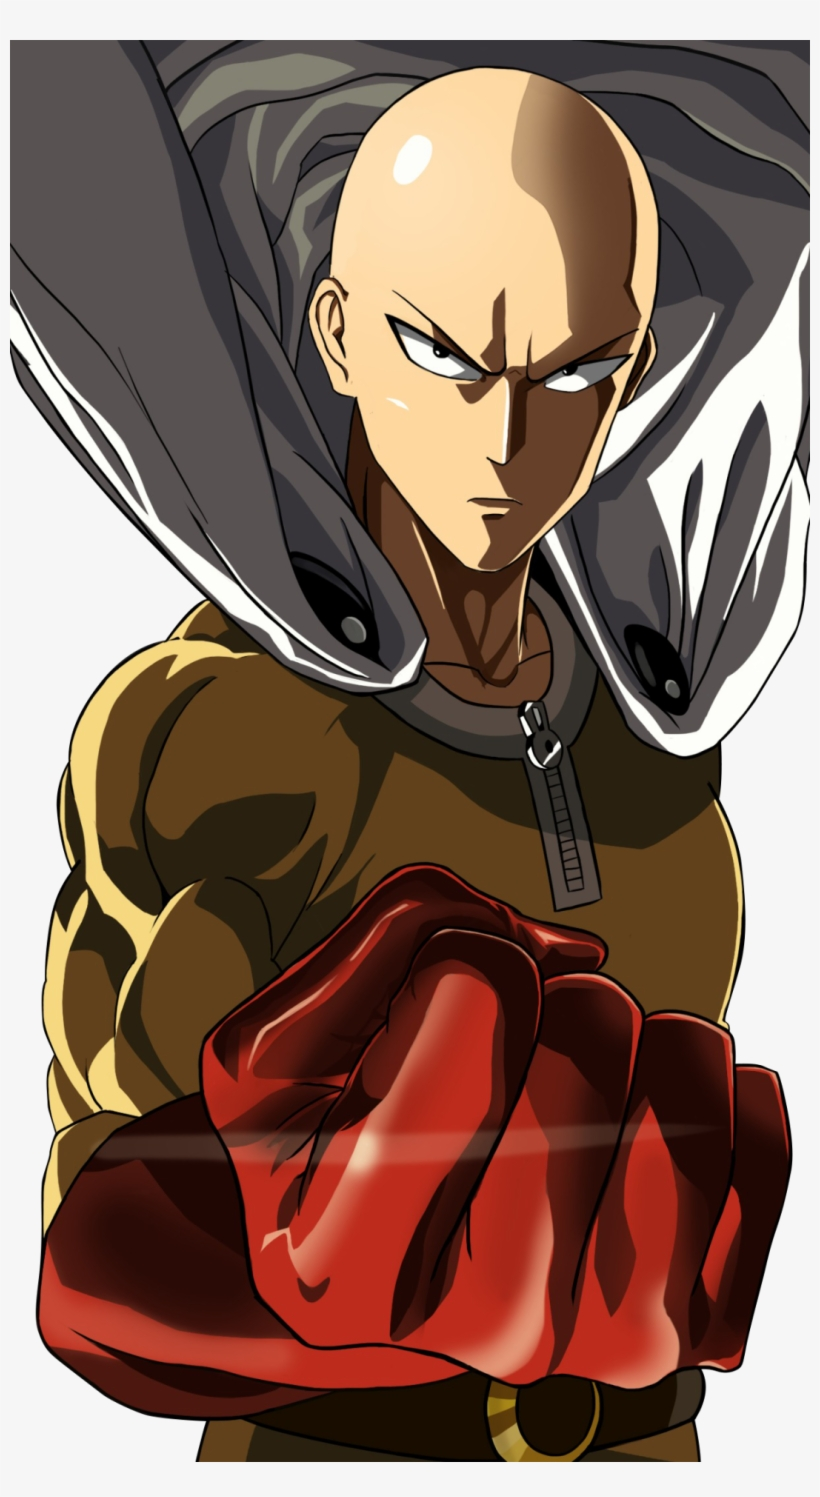 Wallpaper One Punch Man Iphone Transparent Png 1080x1920